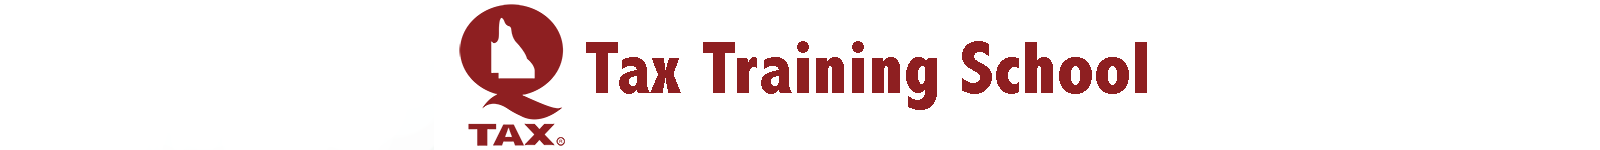 Tax Training School